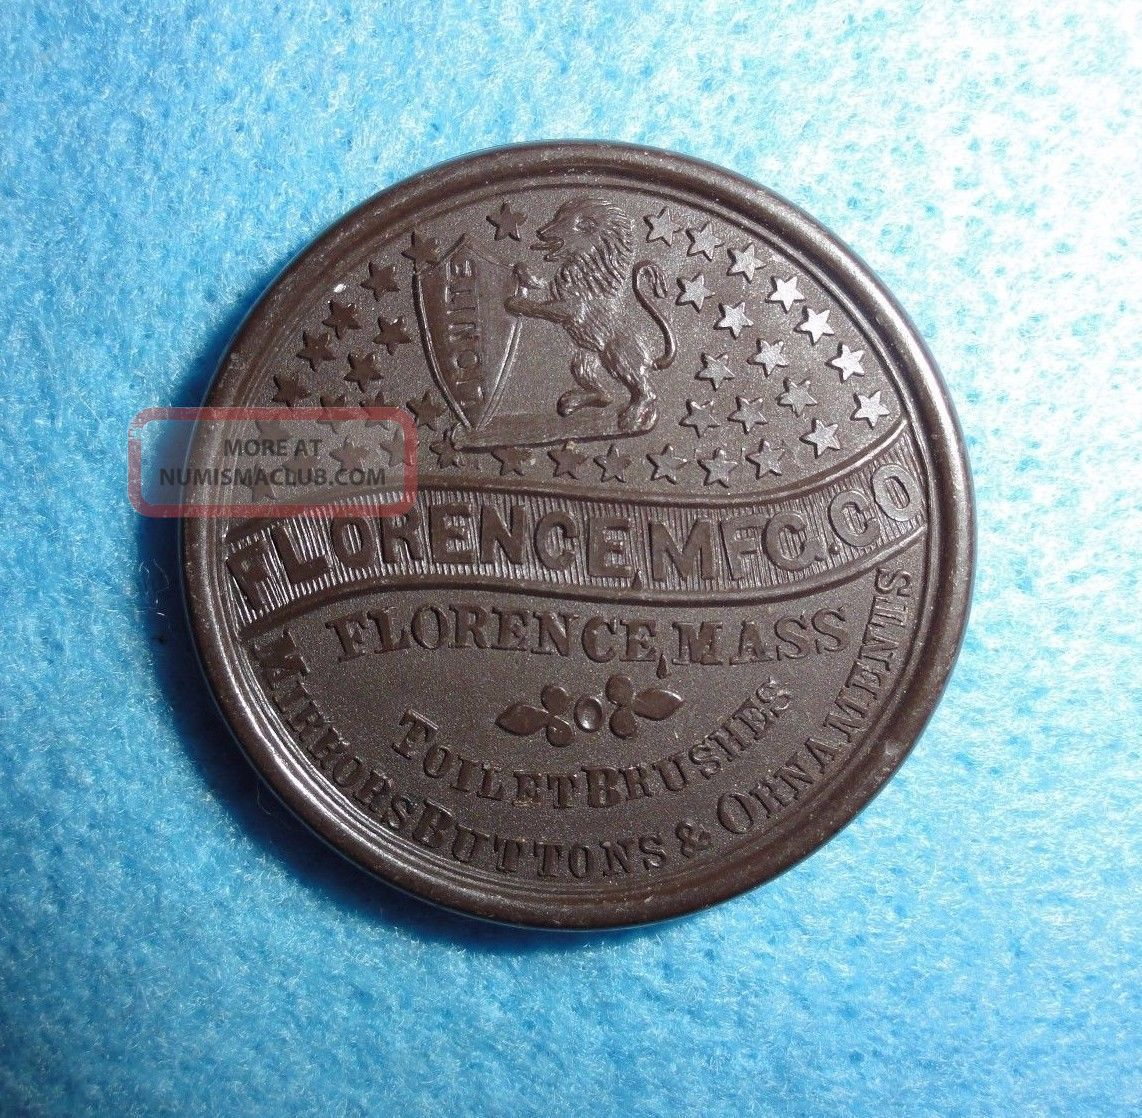 Hard Rubber Merchant Token - - 1876 Centennial Exposition,  Florence (mass) Mfg.  Co. Exonumia photo